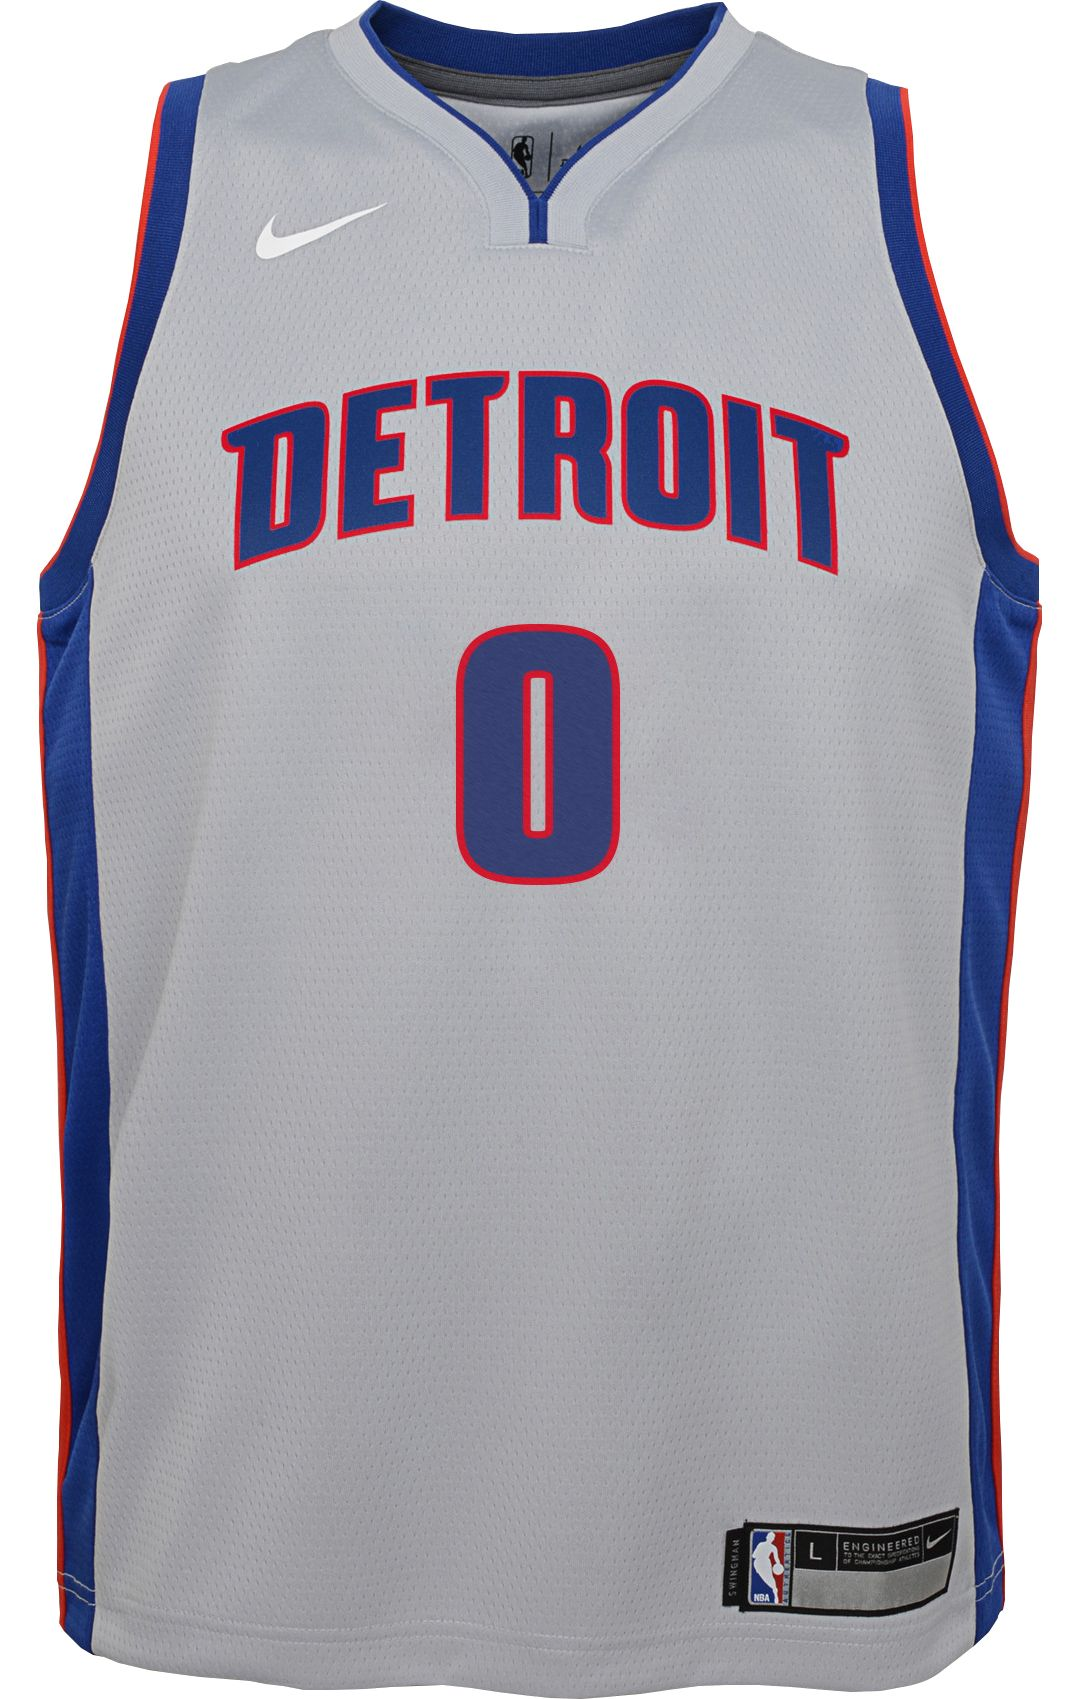 new product d338c 100a6 Nike Youth Detroit Pistons Andre Drummond #0 Grey Dri-FIT Swingman Jersey